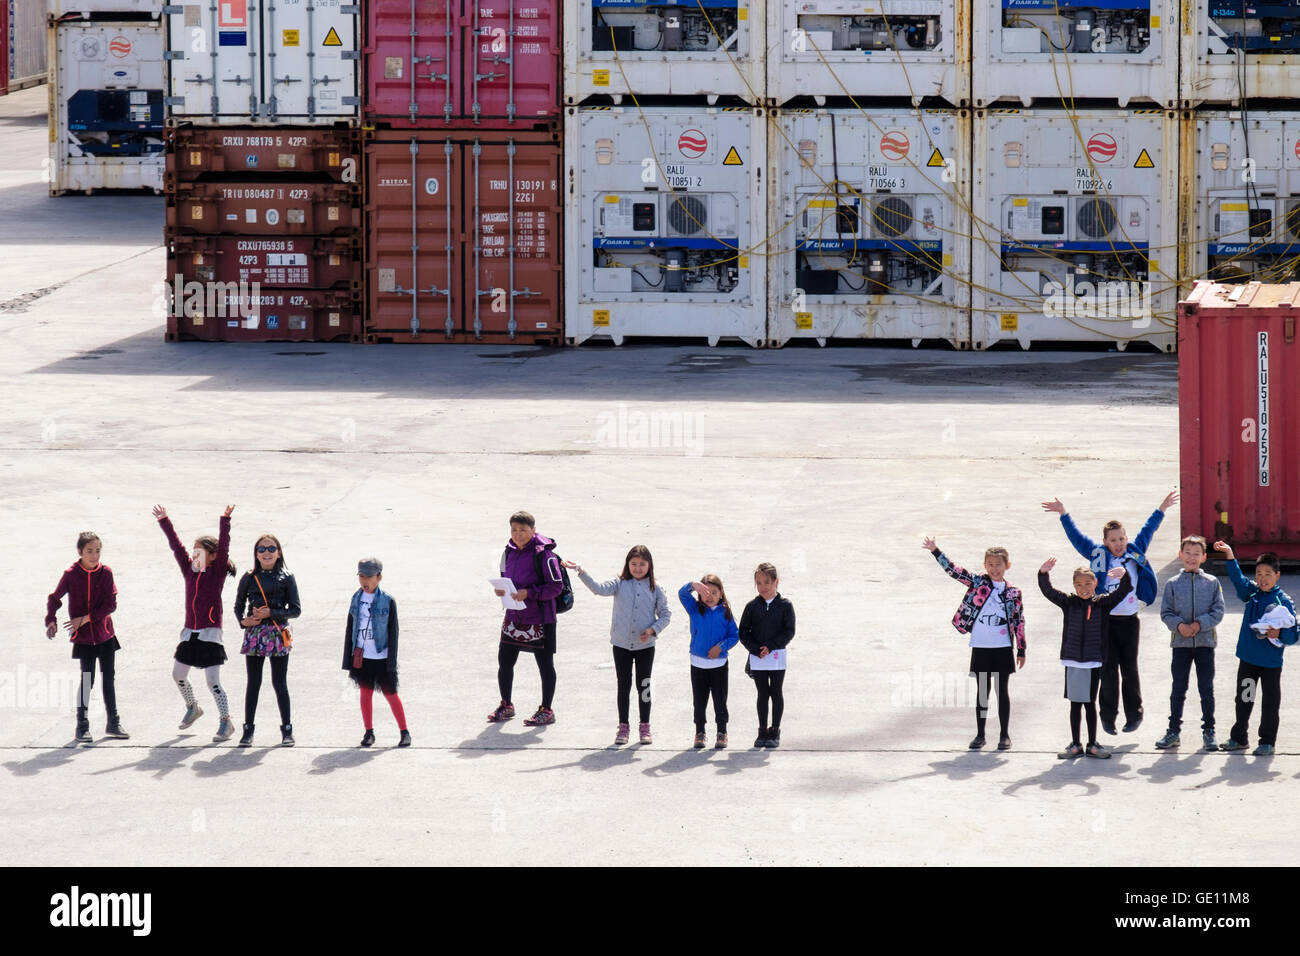 Local Greenlandic Inuit school children wave to a visiting cruise ship from the quay. Sisimiut, Qeqqata, West Greenland - Stock Image